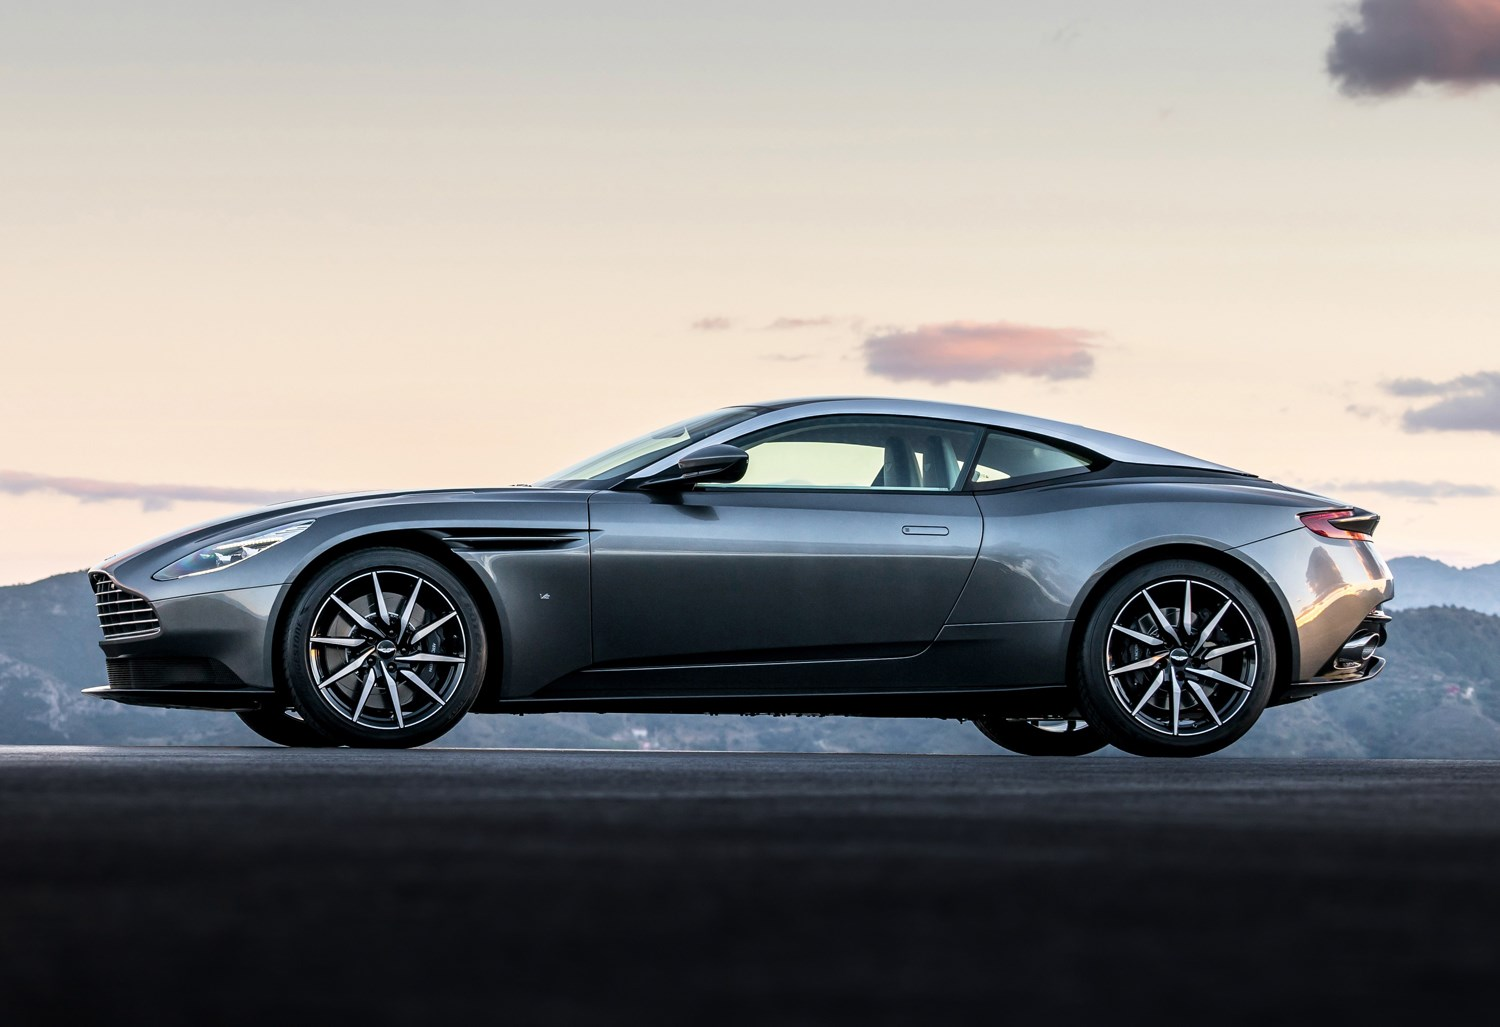 aston martin db11 coupe (2016 - ) photos | parkers